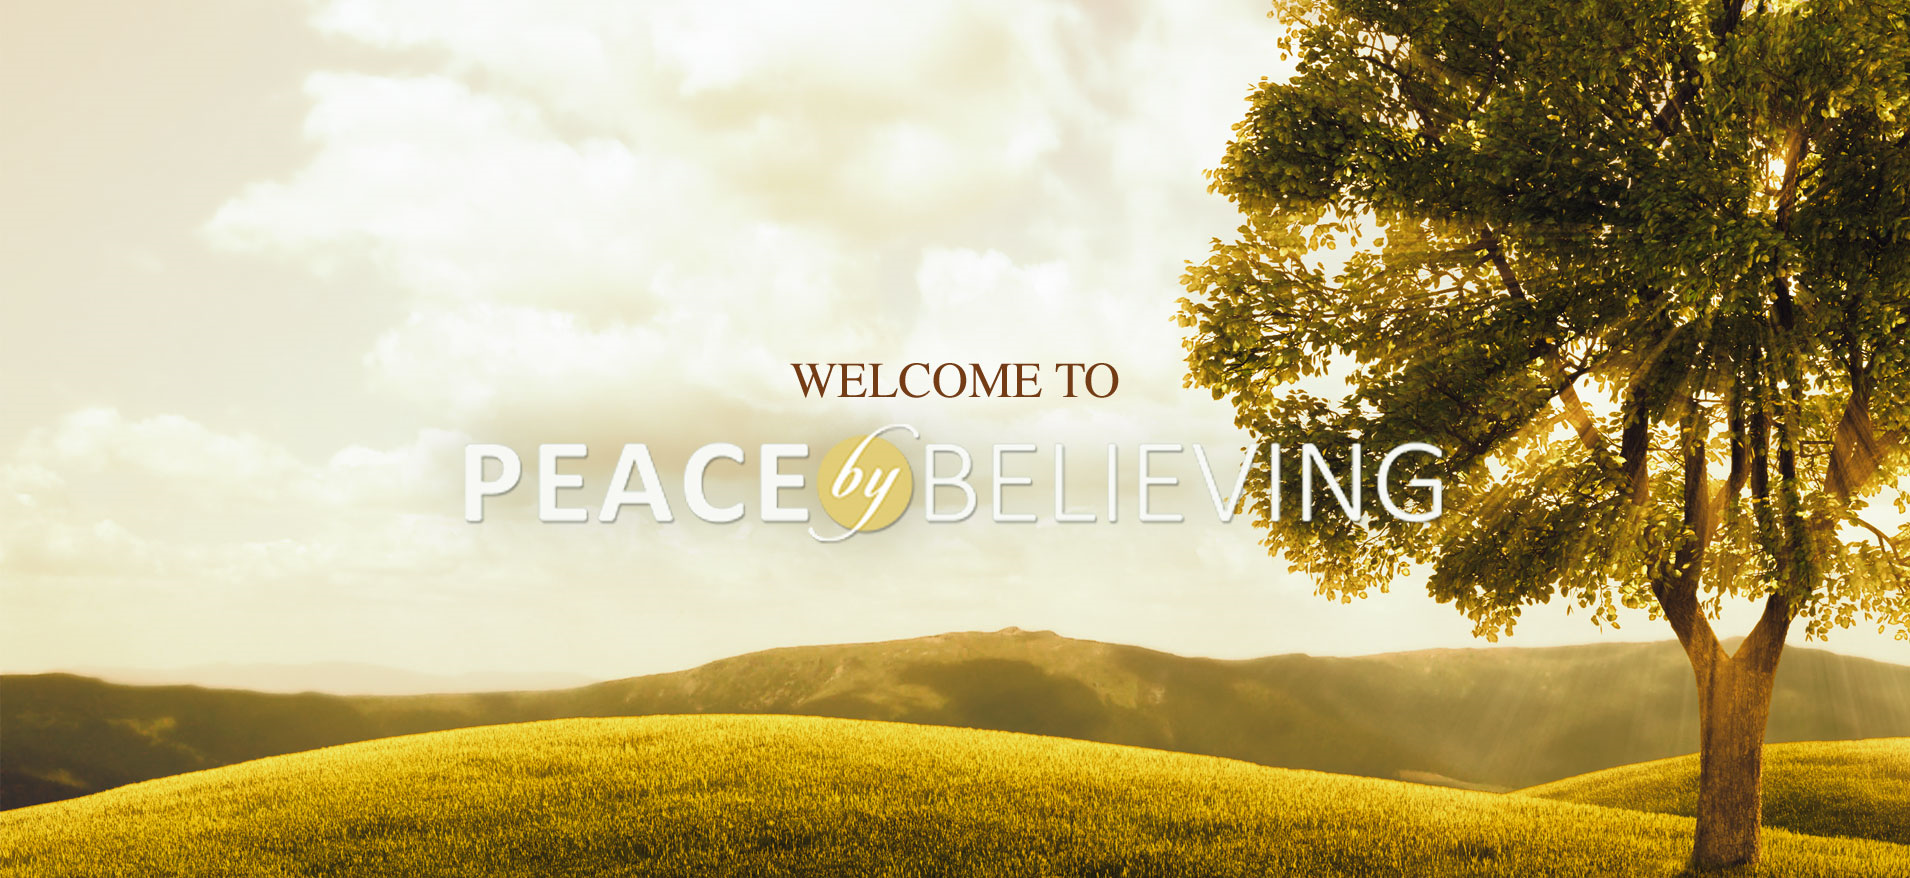 Learn more about the Peace by Believing ministry on their  website .